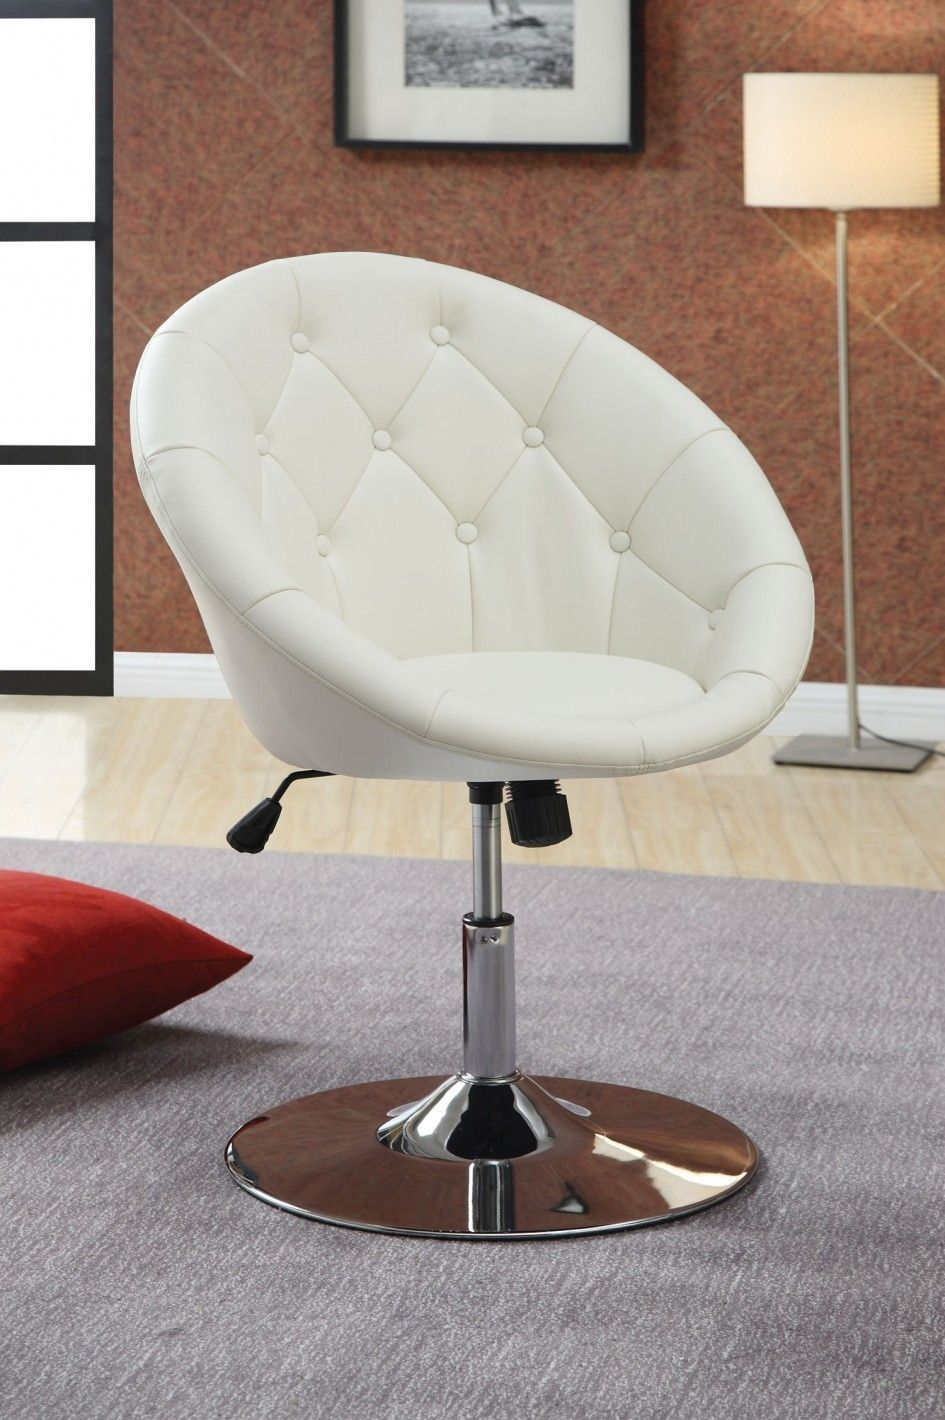 Cool Chairs For A Desk White swivel chairs, White desk